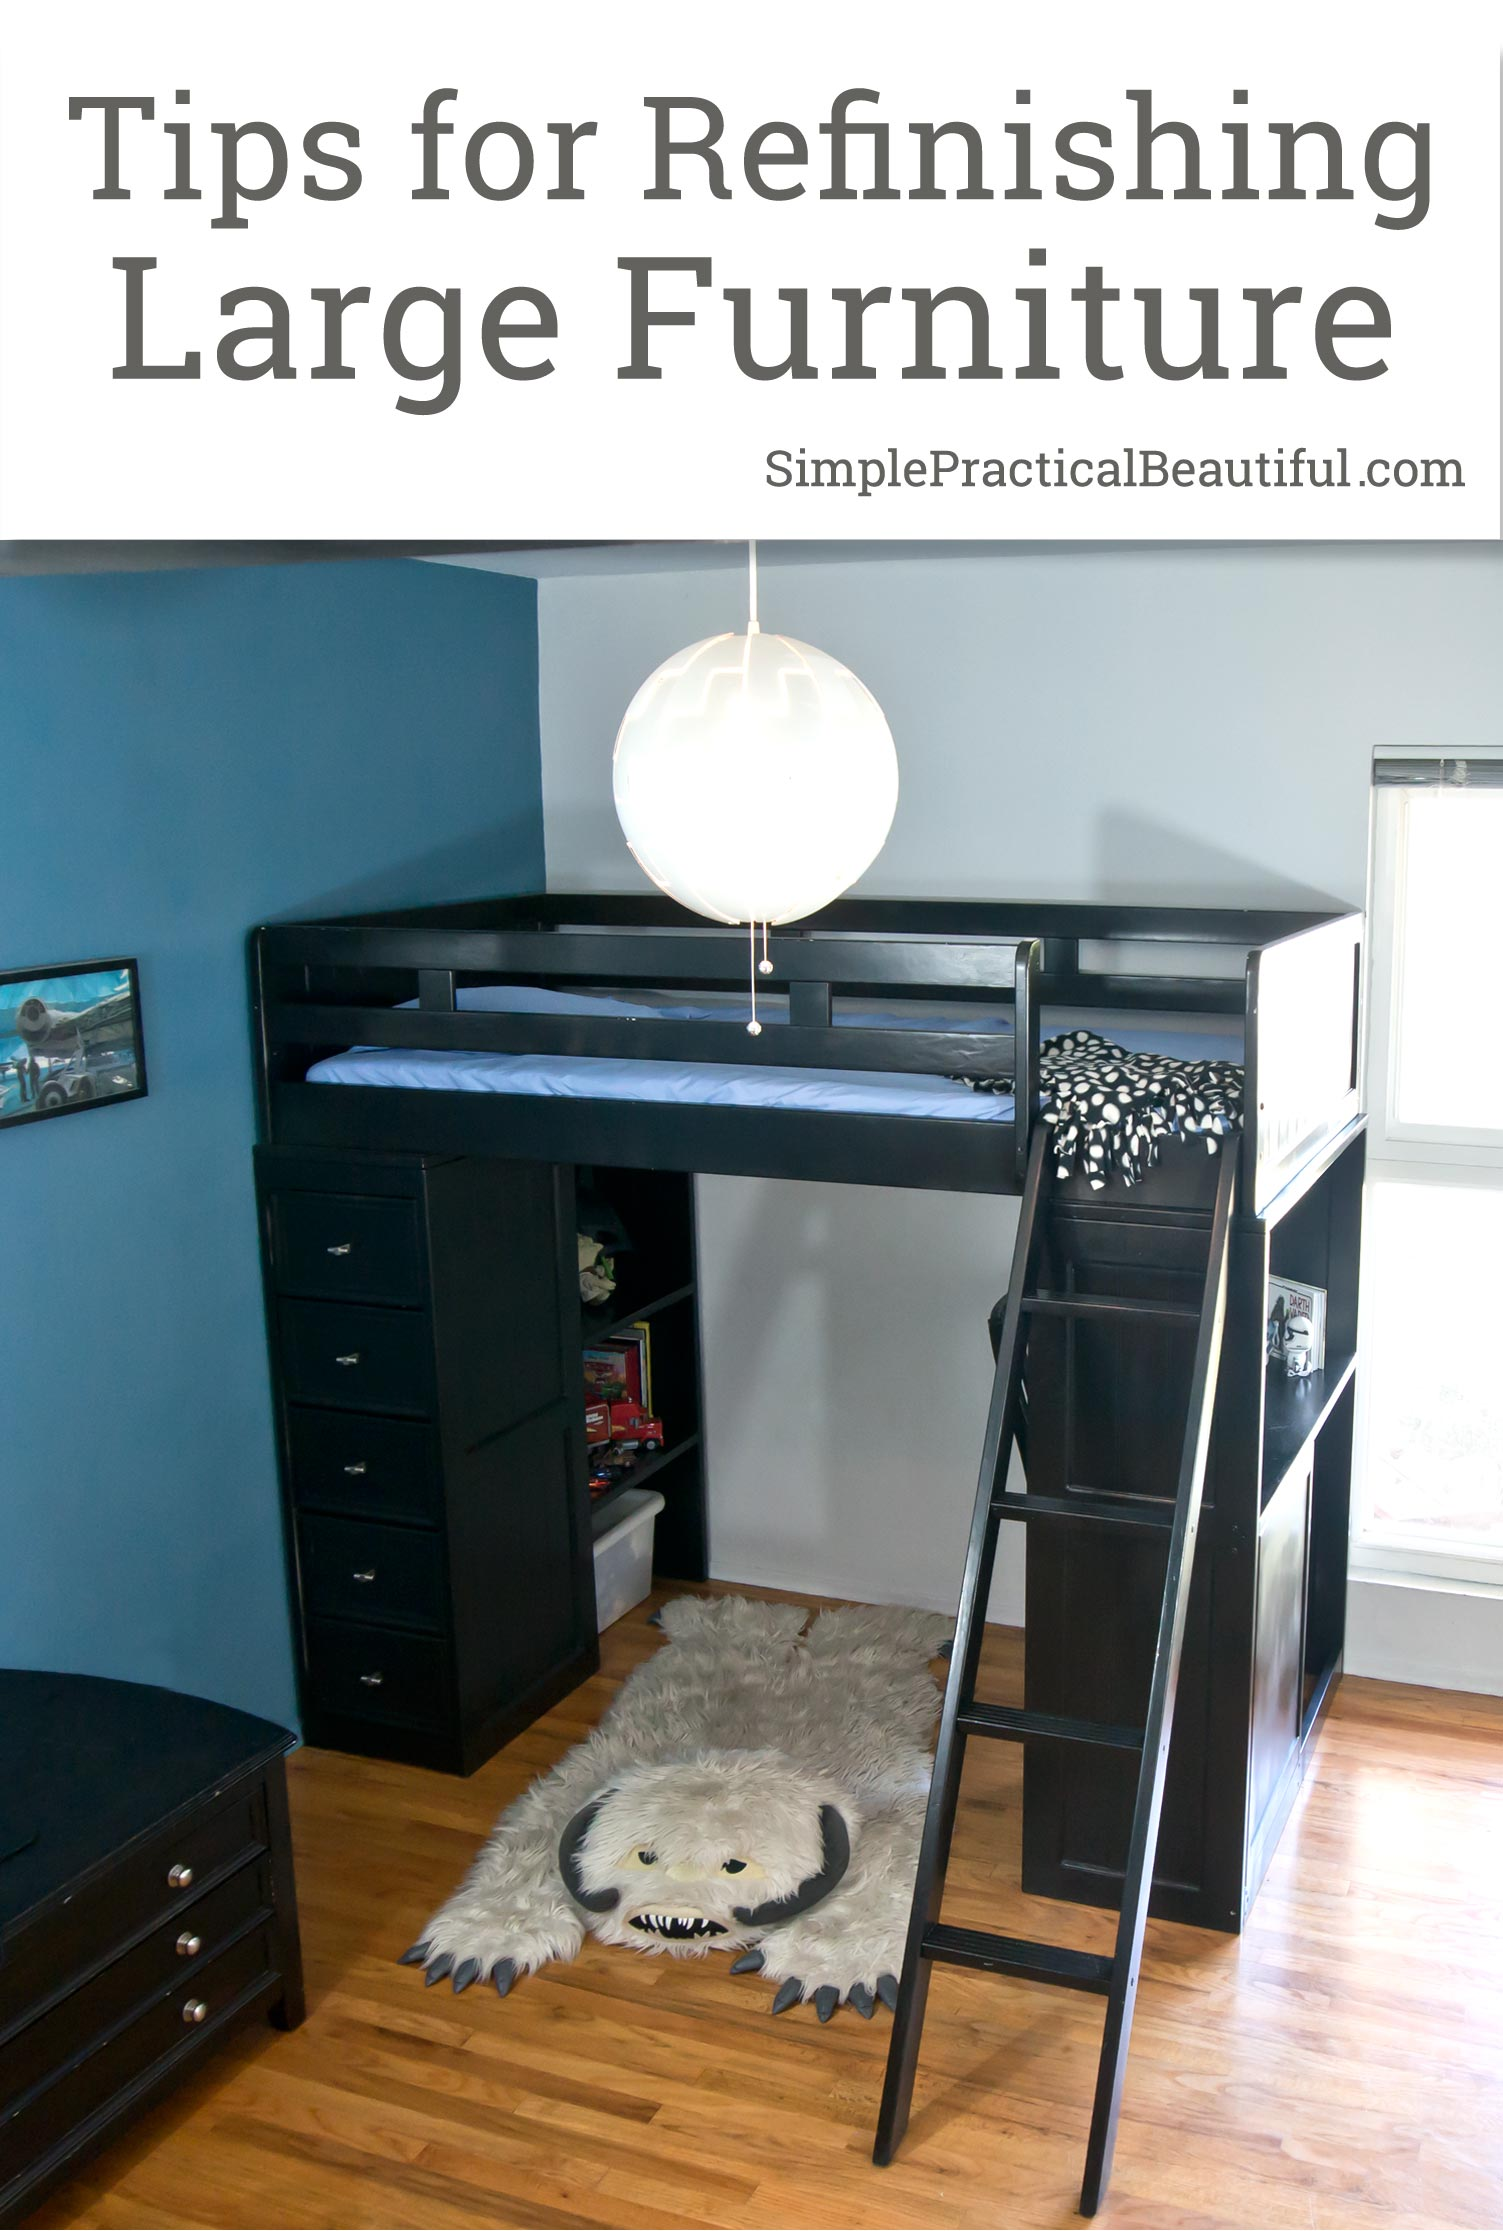 How to refinish large furniture like a loft bed | Tips and ideas for easier furniture flipping | part of the #FabFlippinContest